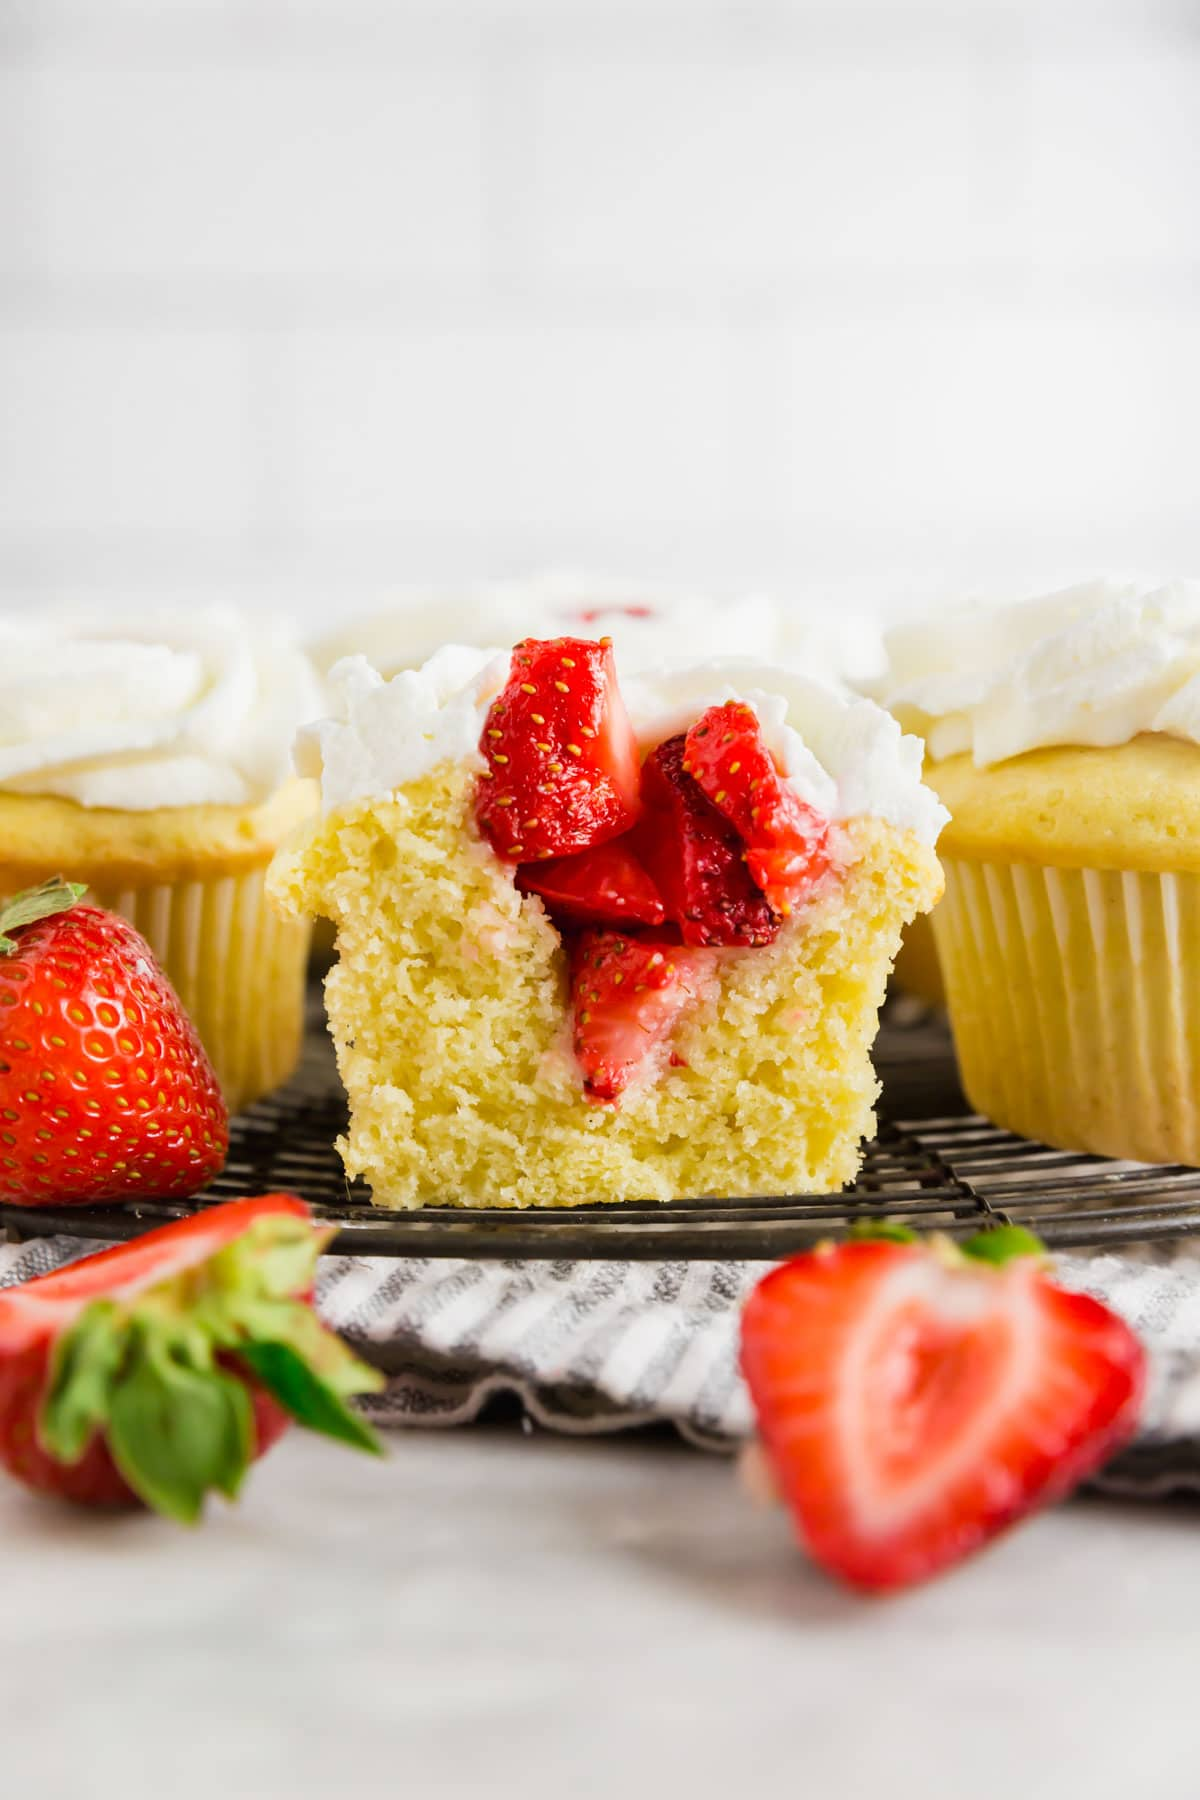 A strawberry shortcake cupcake sliced in half to show the strawberry filling on top of a wire cooling rack.